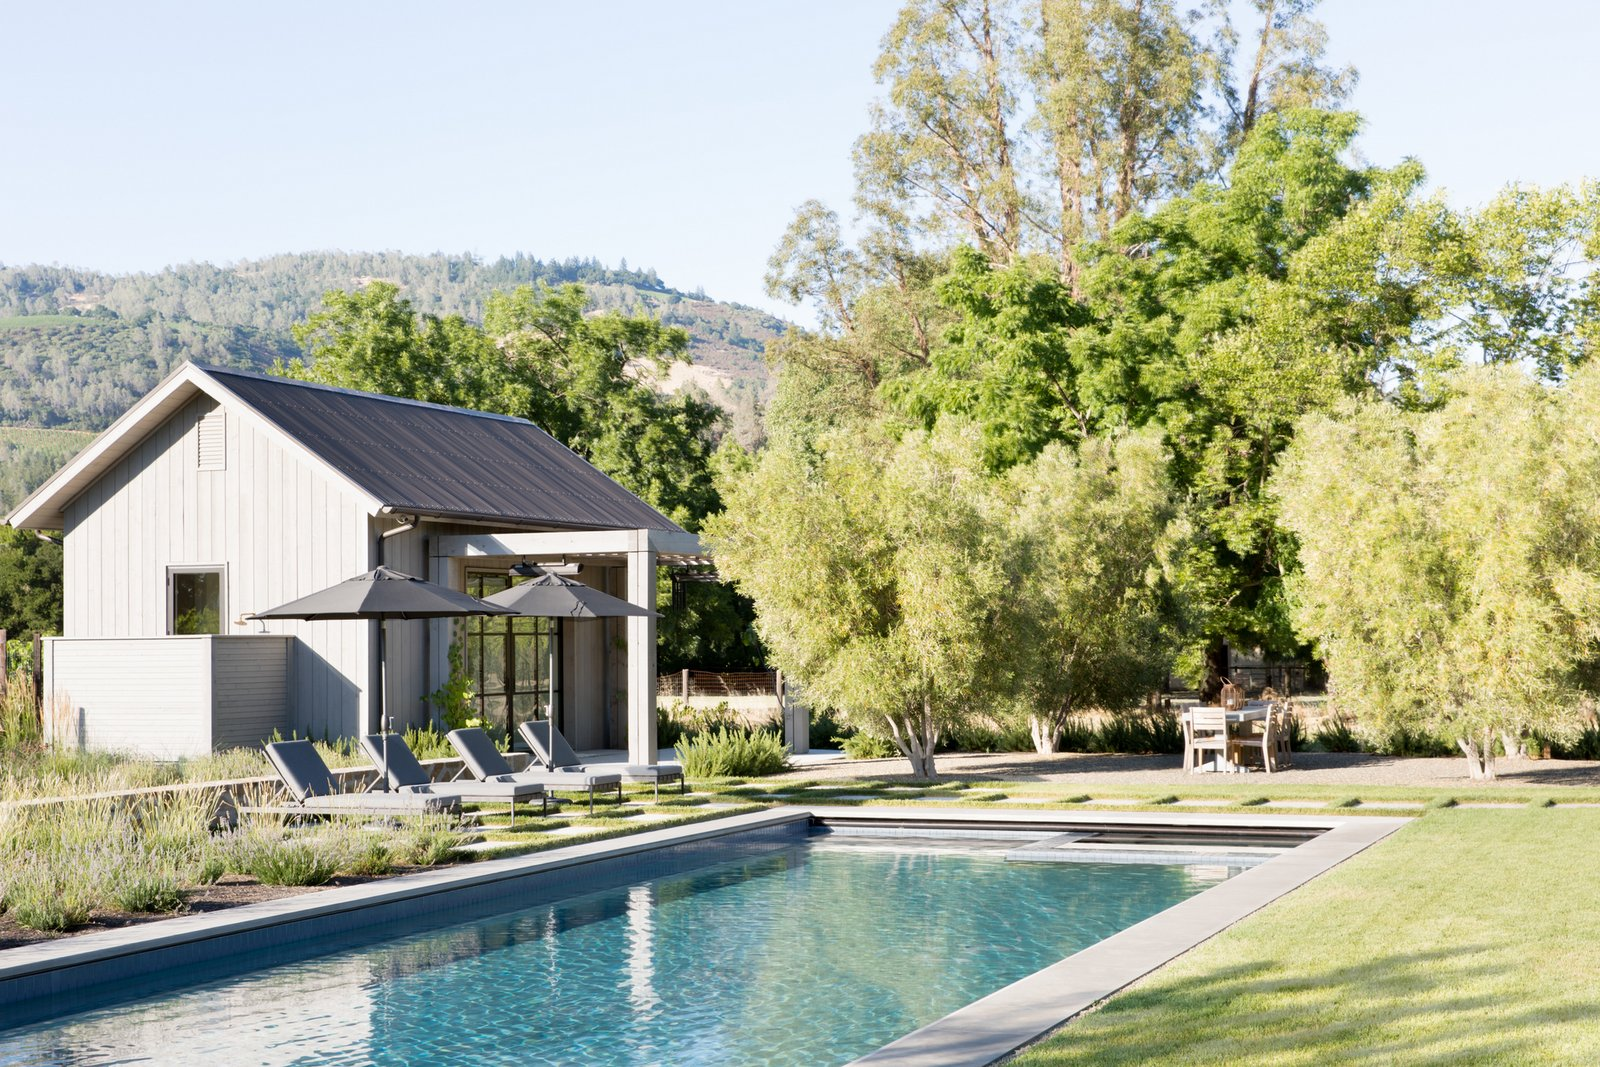 Calistoga Residence pool house